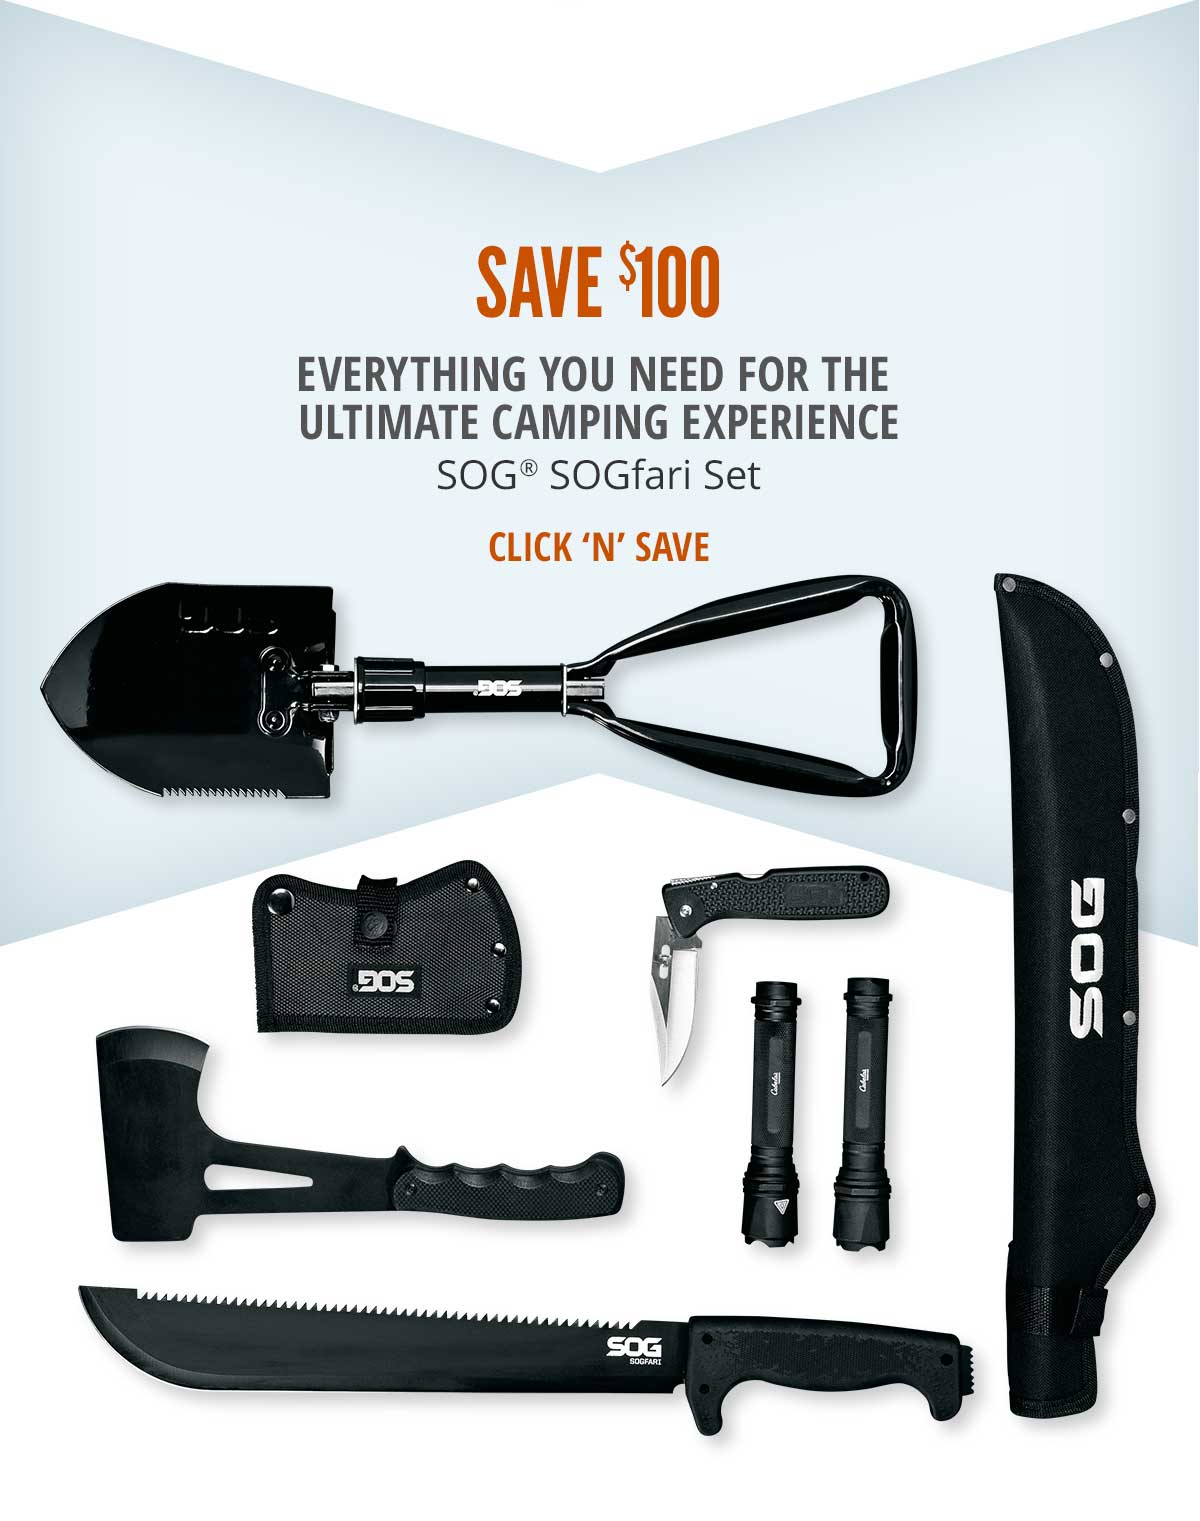 Save $100 on SOG SOGfari Set